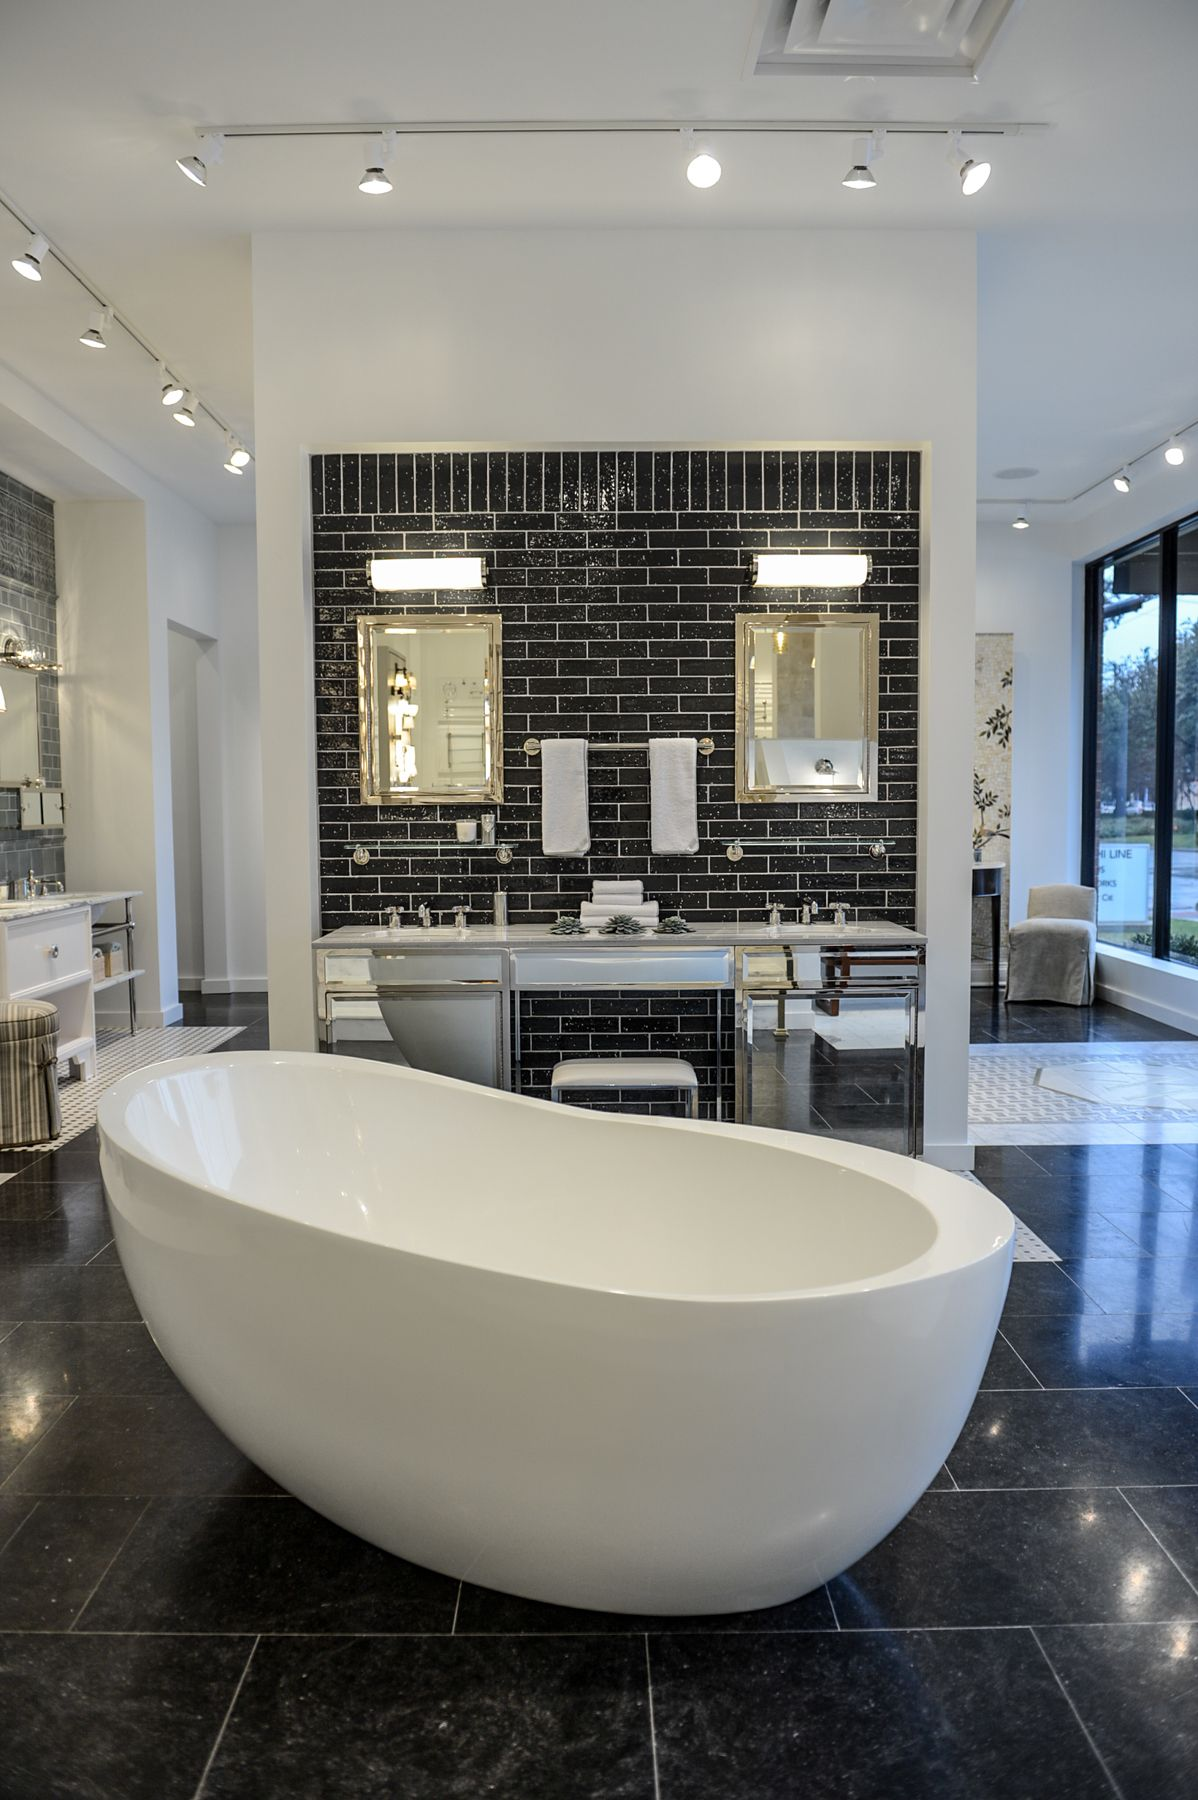 Faucets Fittings Tubs And Surfaces For Today S Kitchen And Bath Kitchen And Bath Showroom Modern Bathroom Design Modern Bathroom